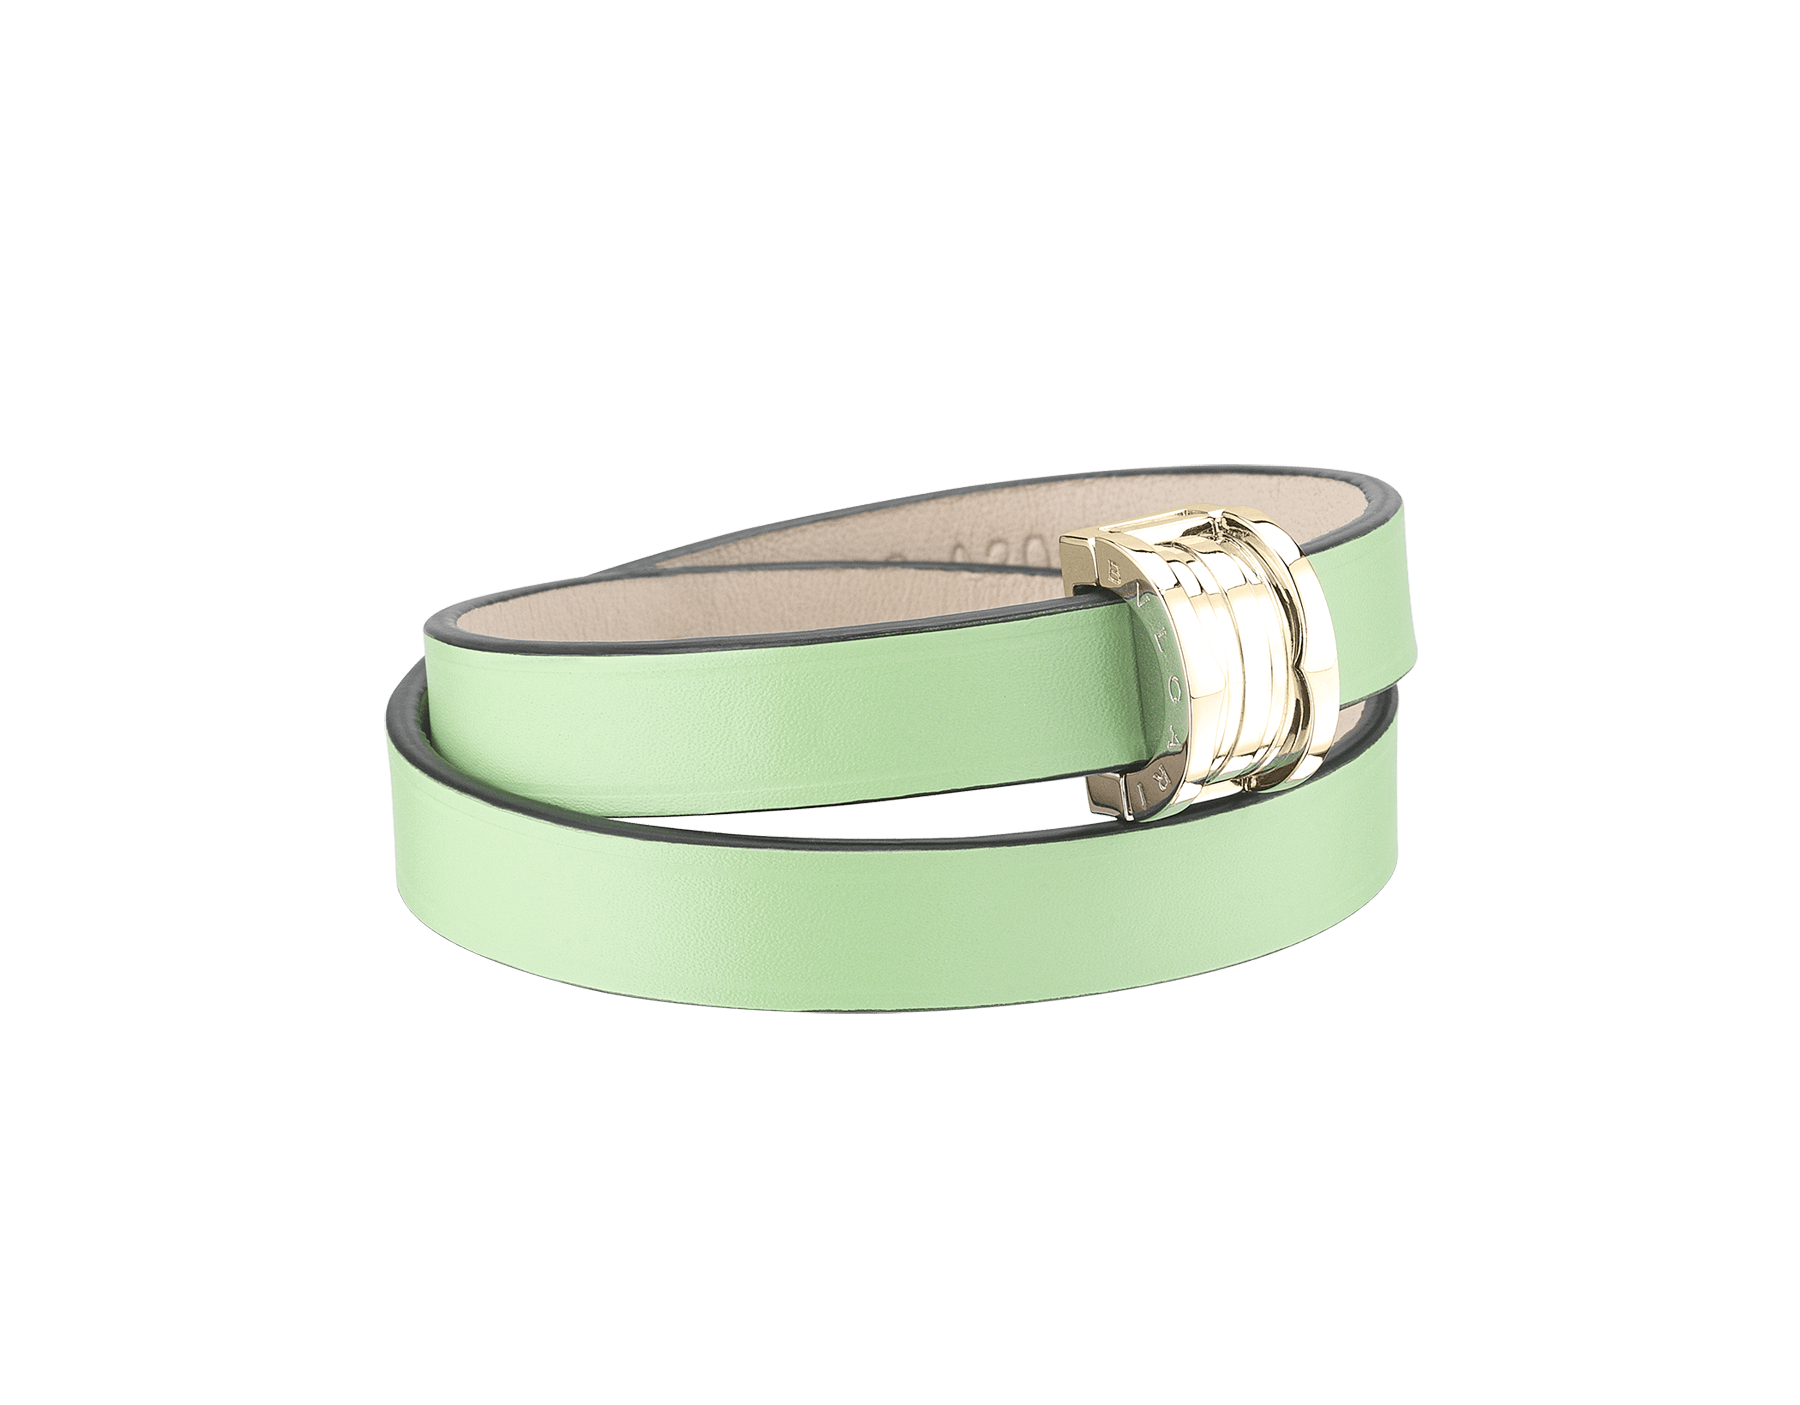 """Bvlgari Bvlgari"" double-coiled bracelet in mint calf leather, with B.Zero1 snap closure in light gold plated brass. BZERO1-CL-M image 1"